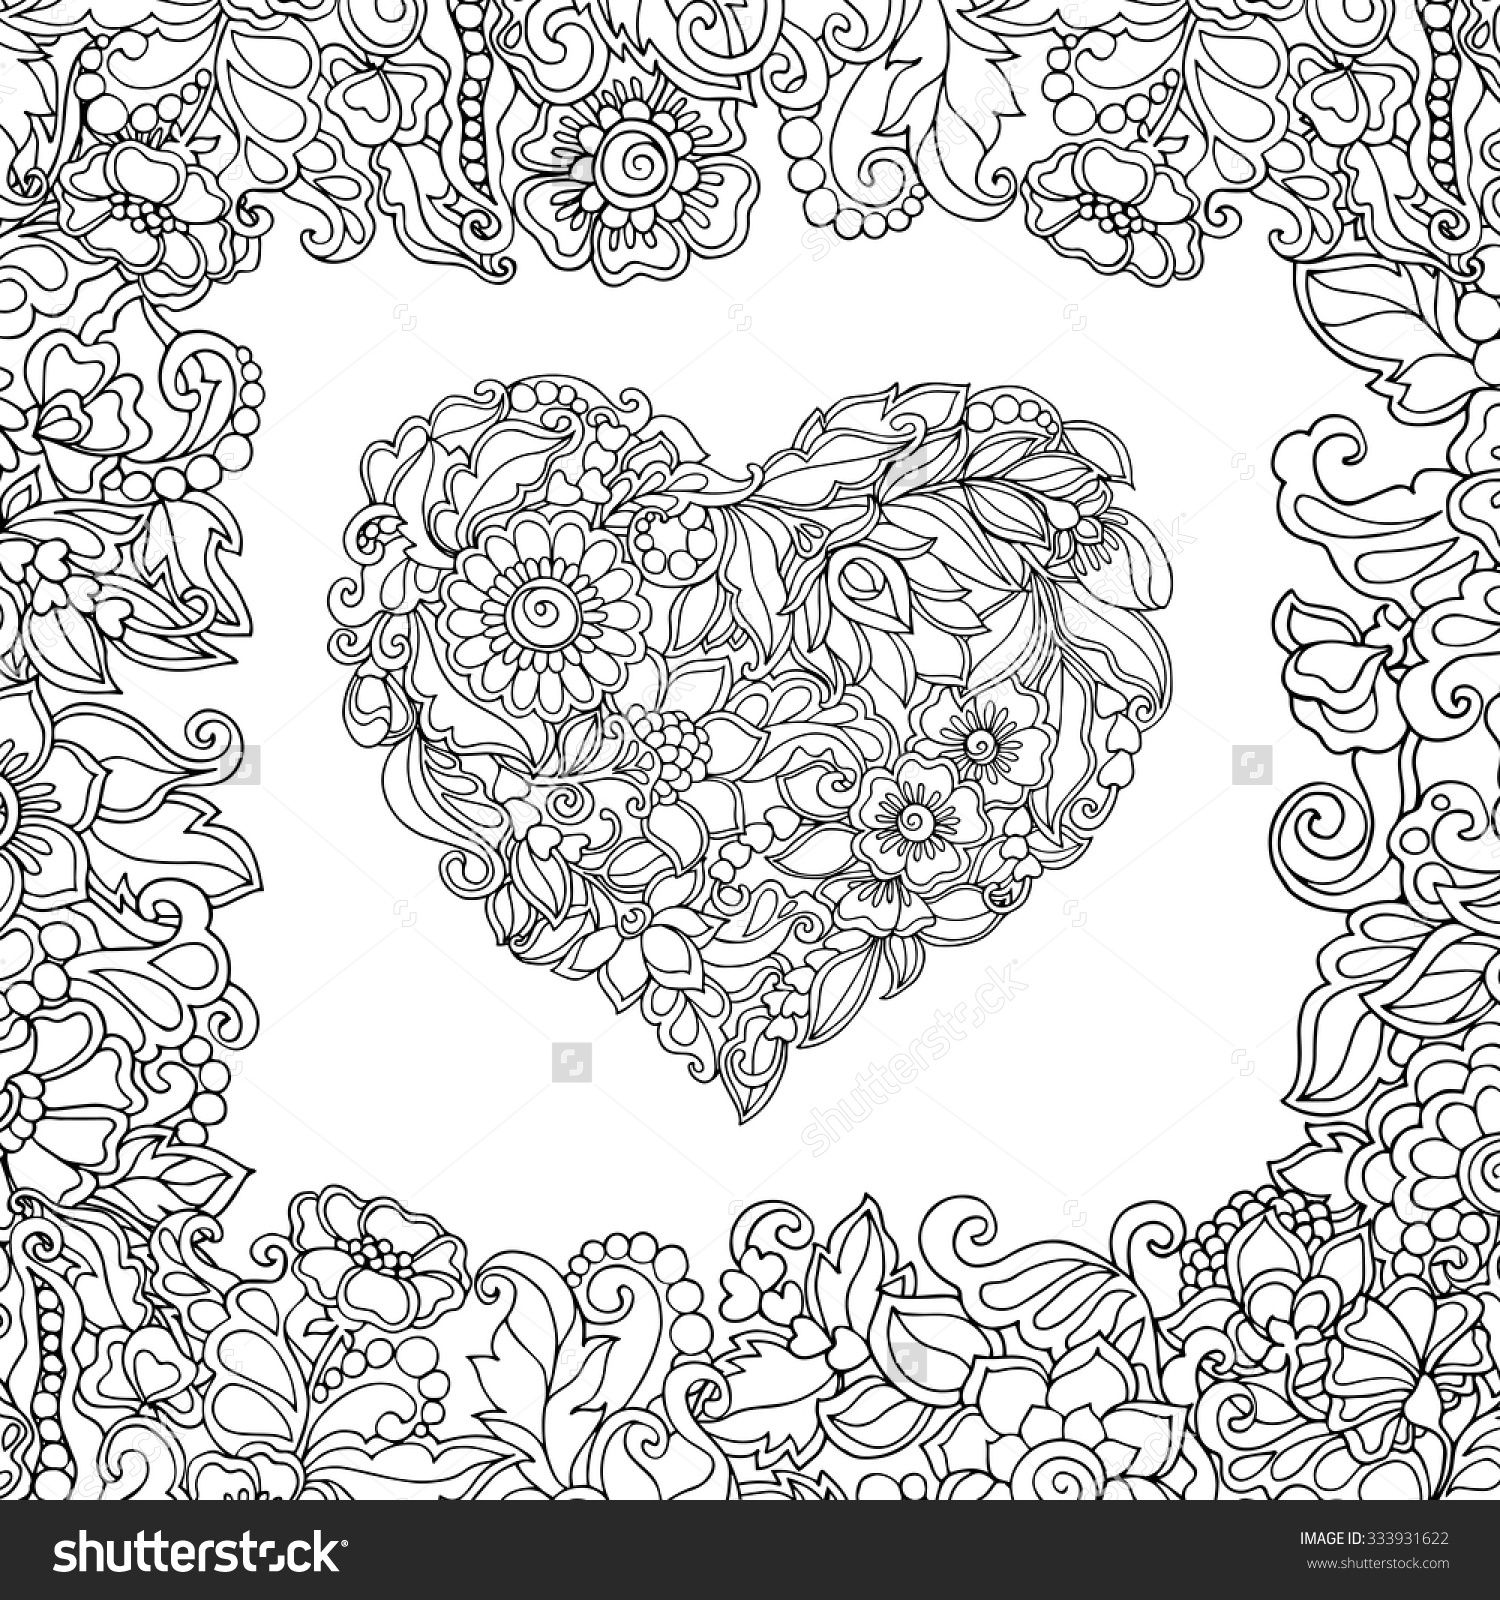 Coloring Book For Adult And Older Children Page With